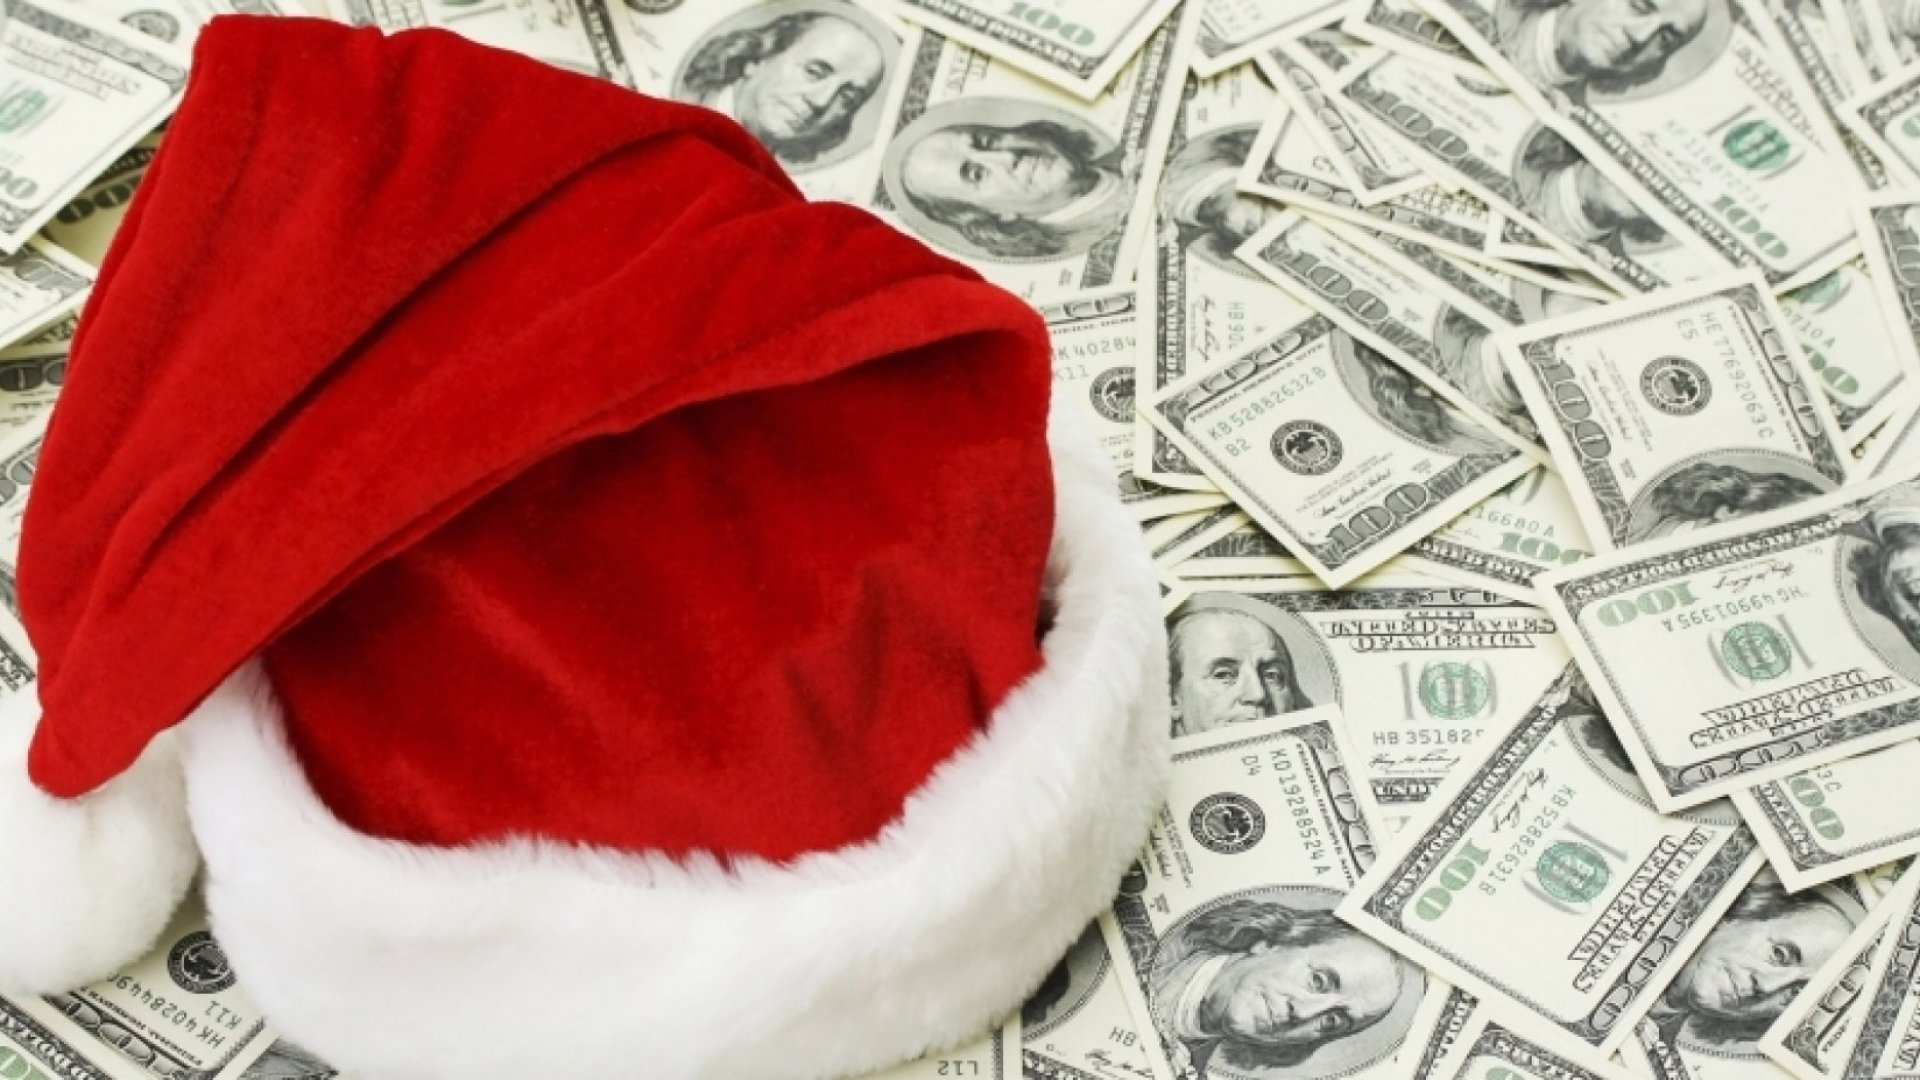 How to Effectively Reject Consumerism and Enjoy the Holidays